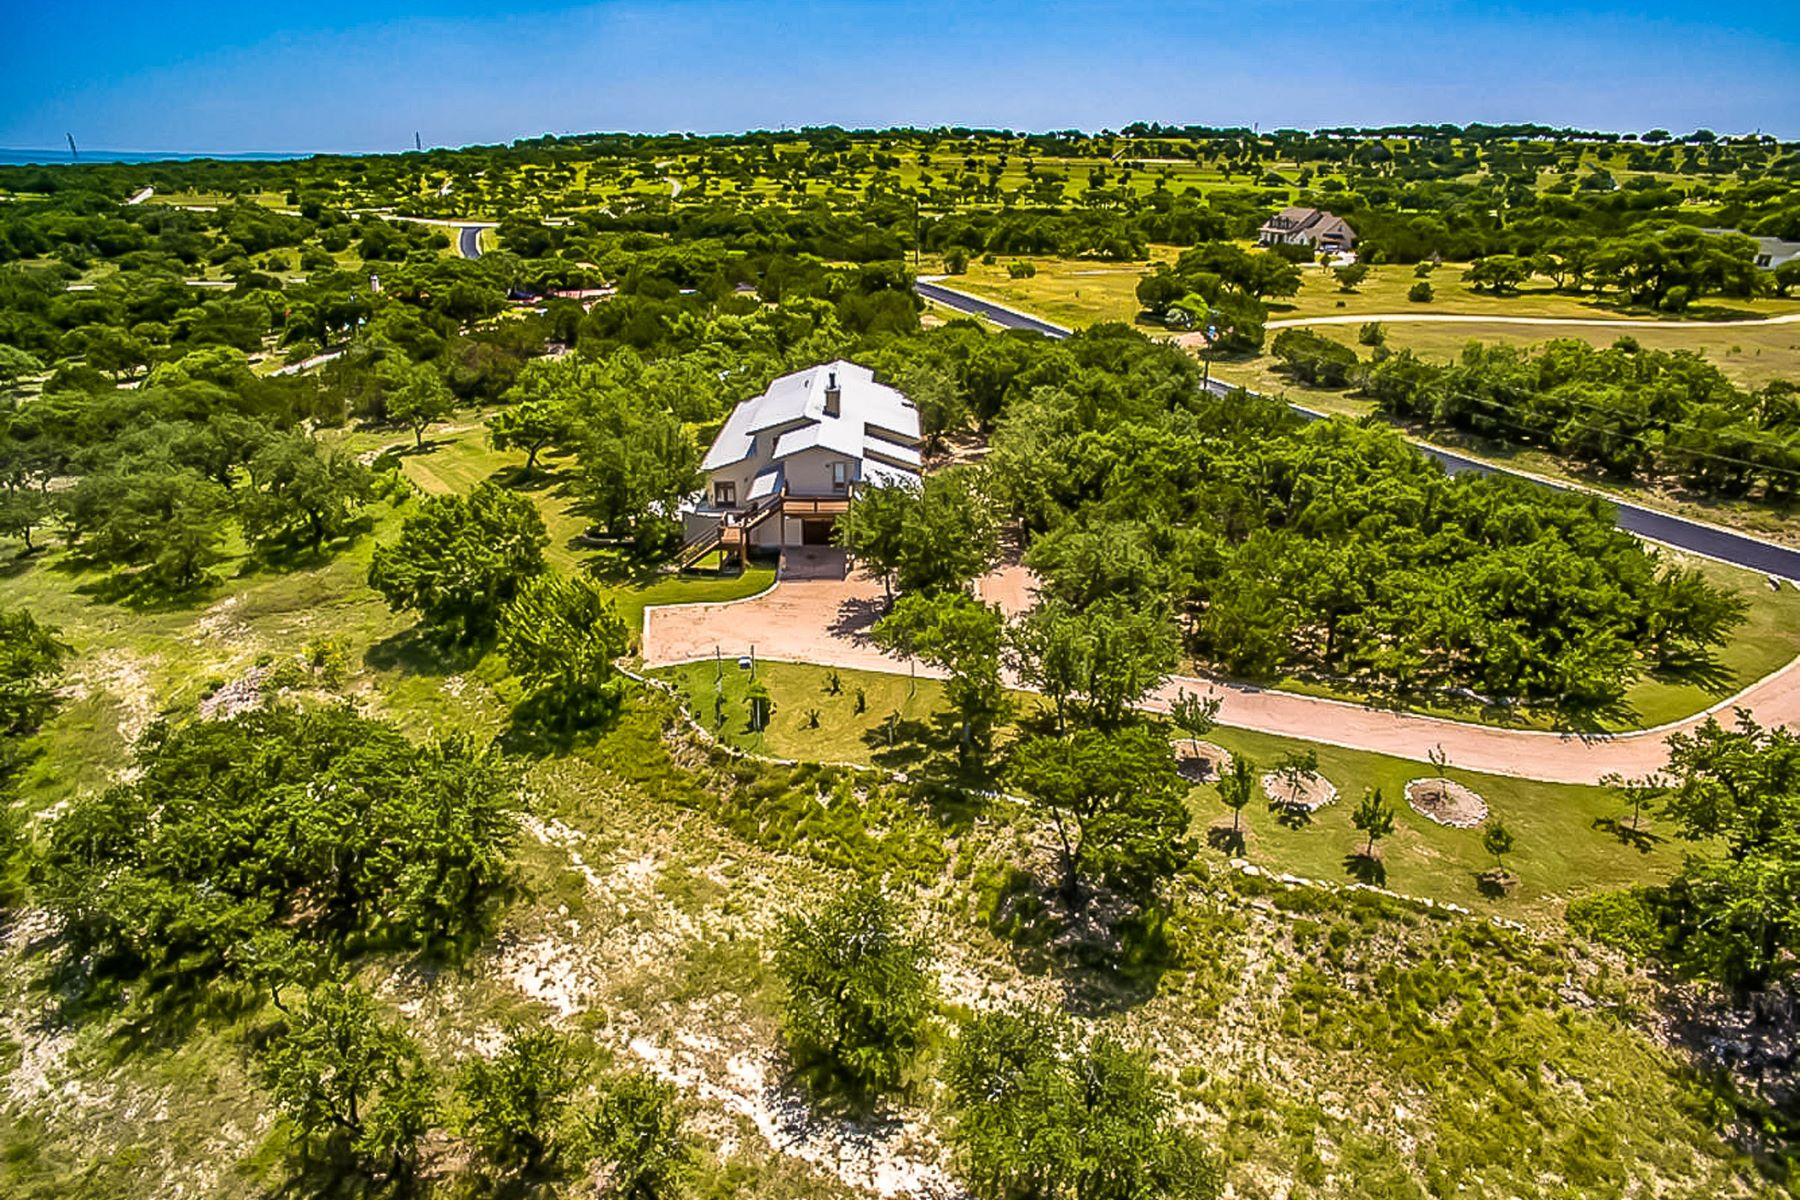 Maison unifamiliale pour l Vente à Panoramic Views to the Hill Country 140 Granite Ridge Dr Spicewood, Texas, 78669 États-Unis